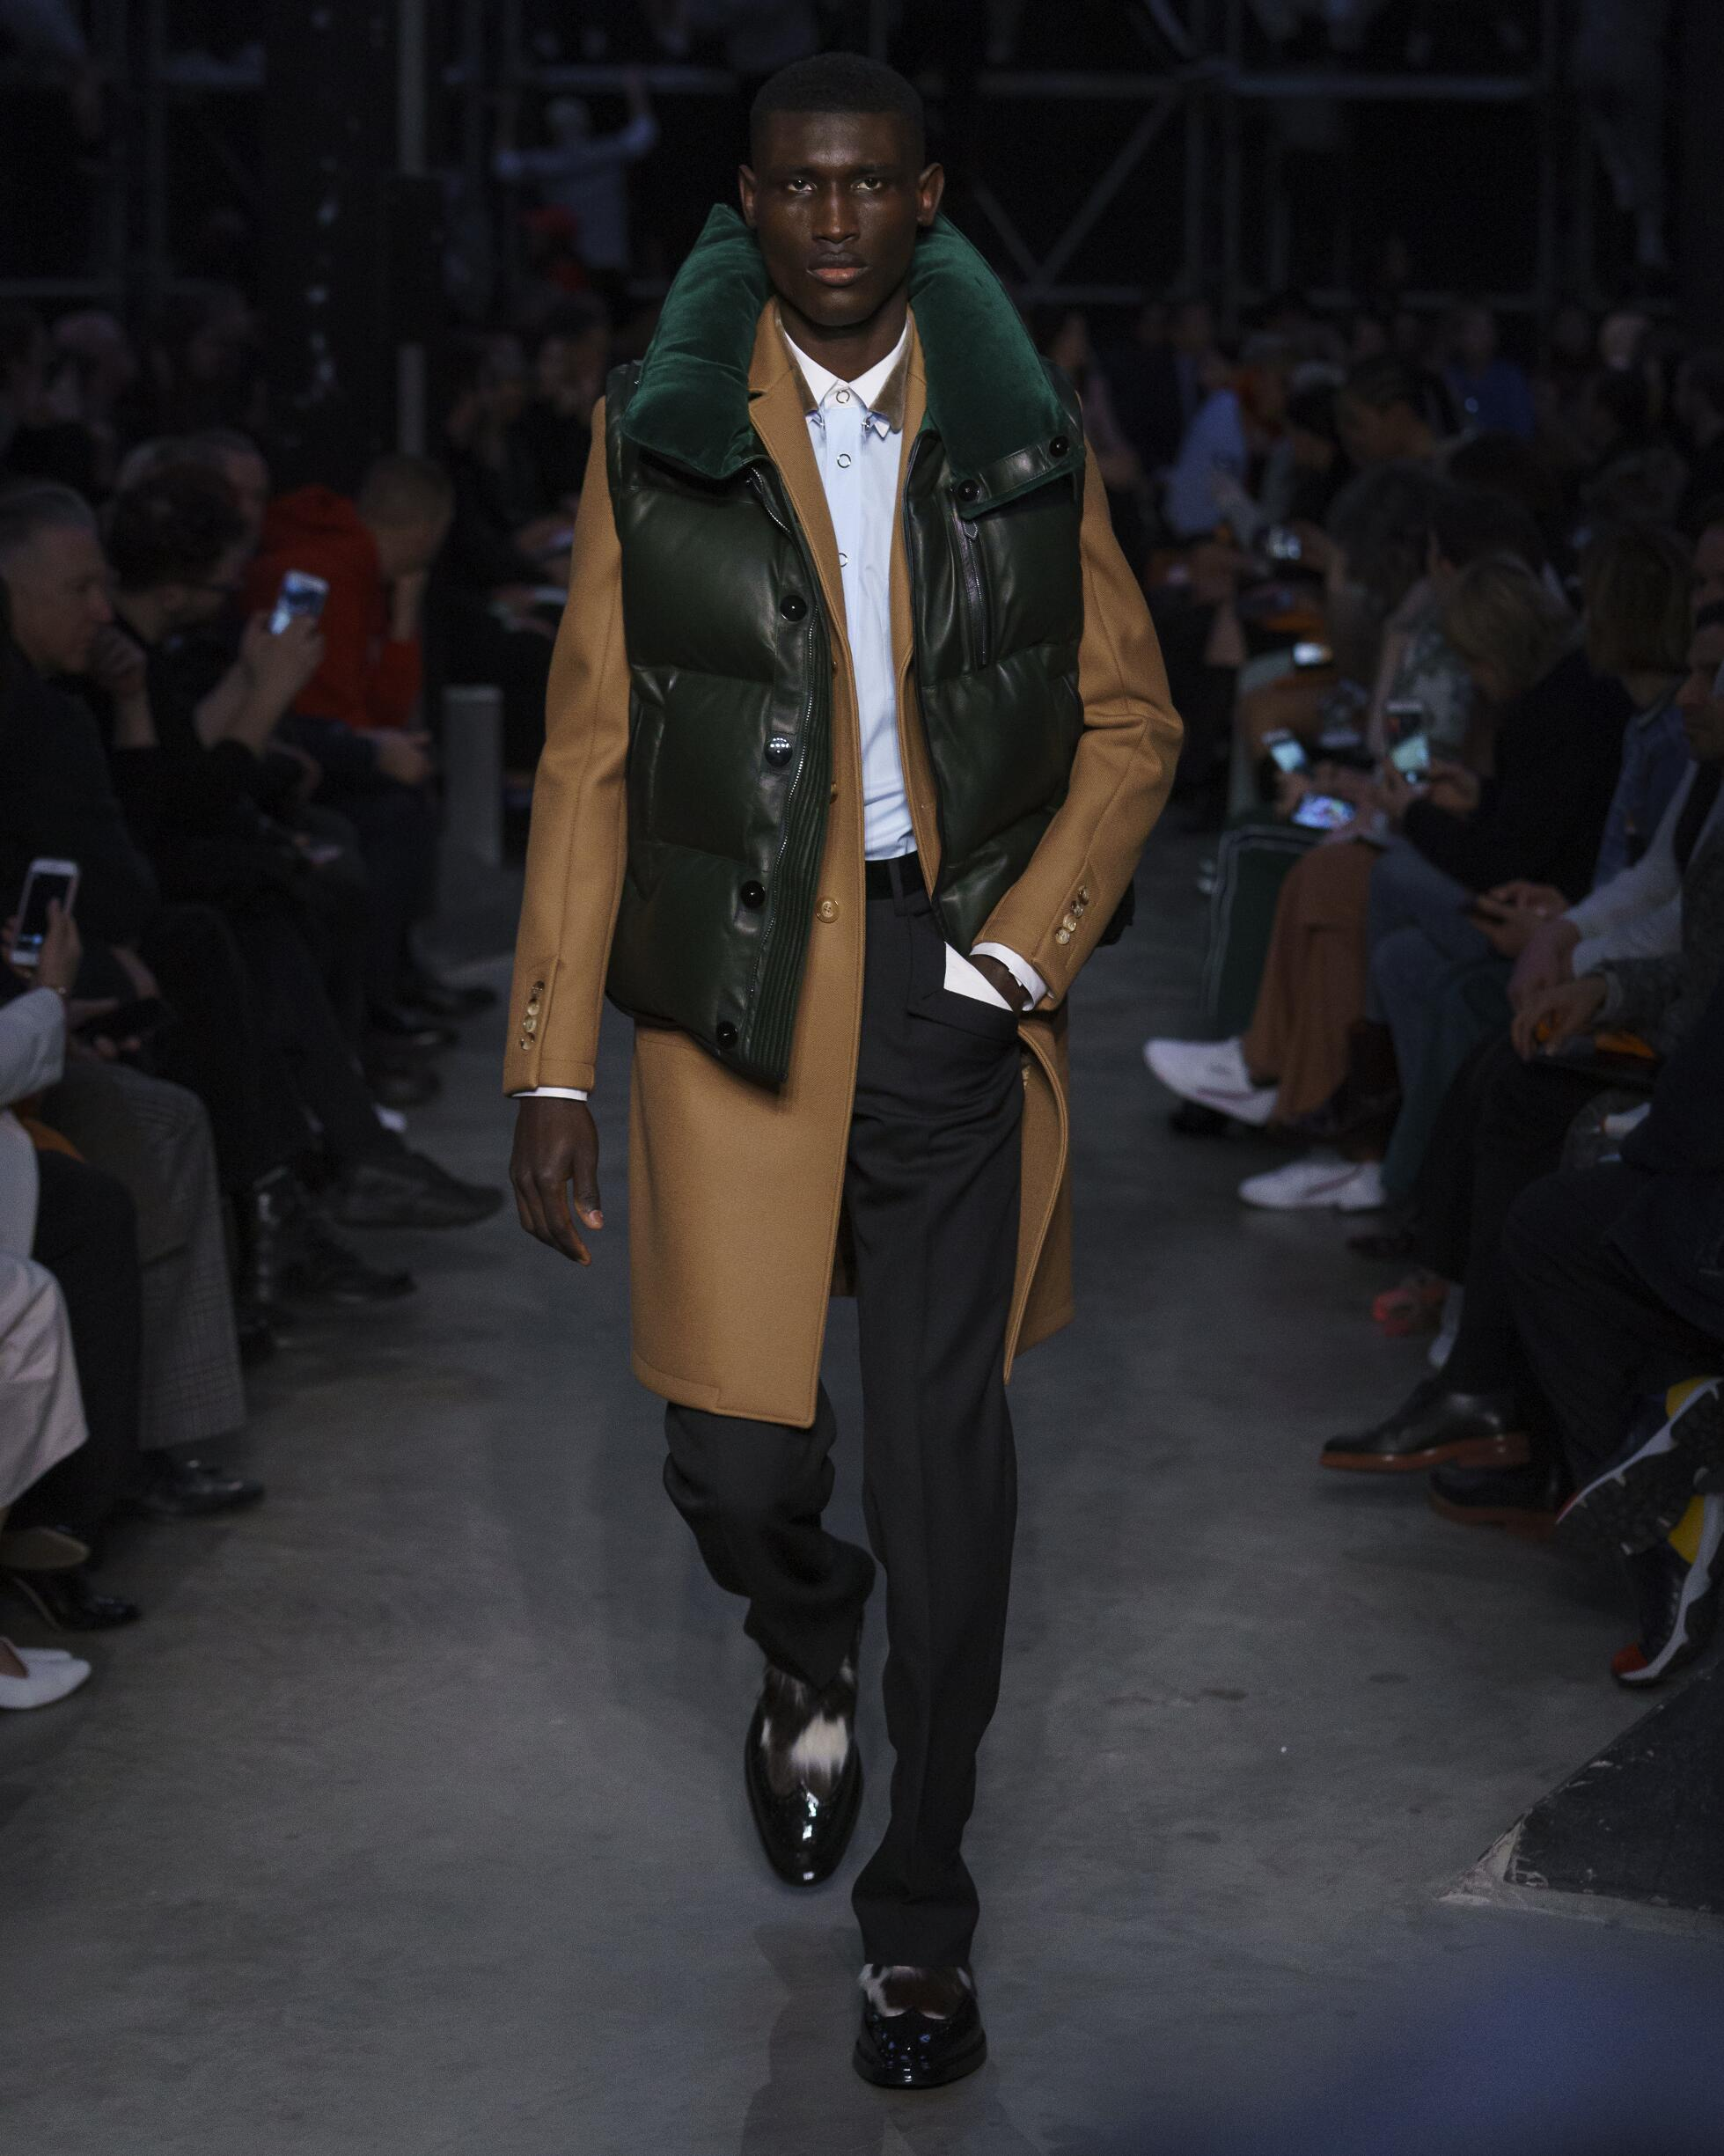 Burberry Menswear Collection Trends